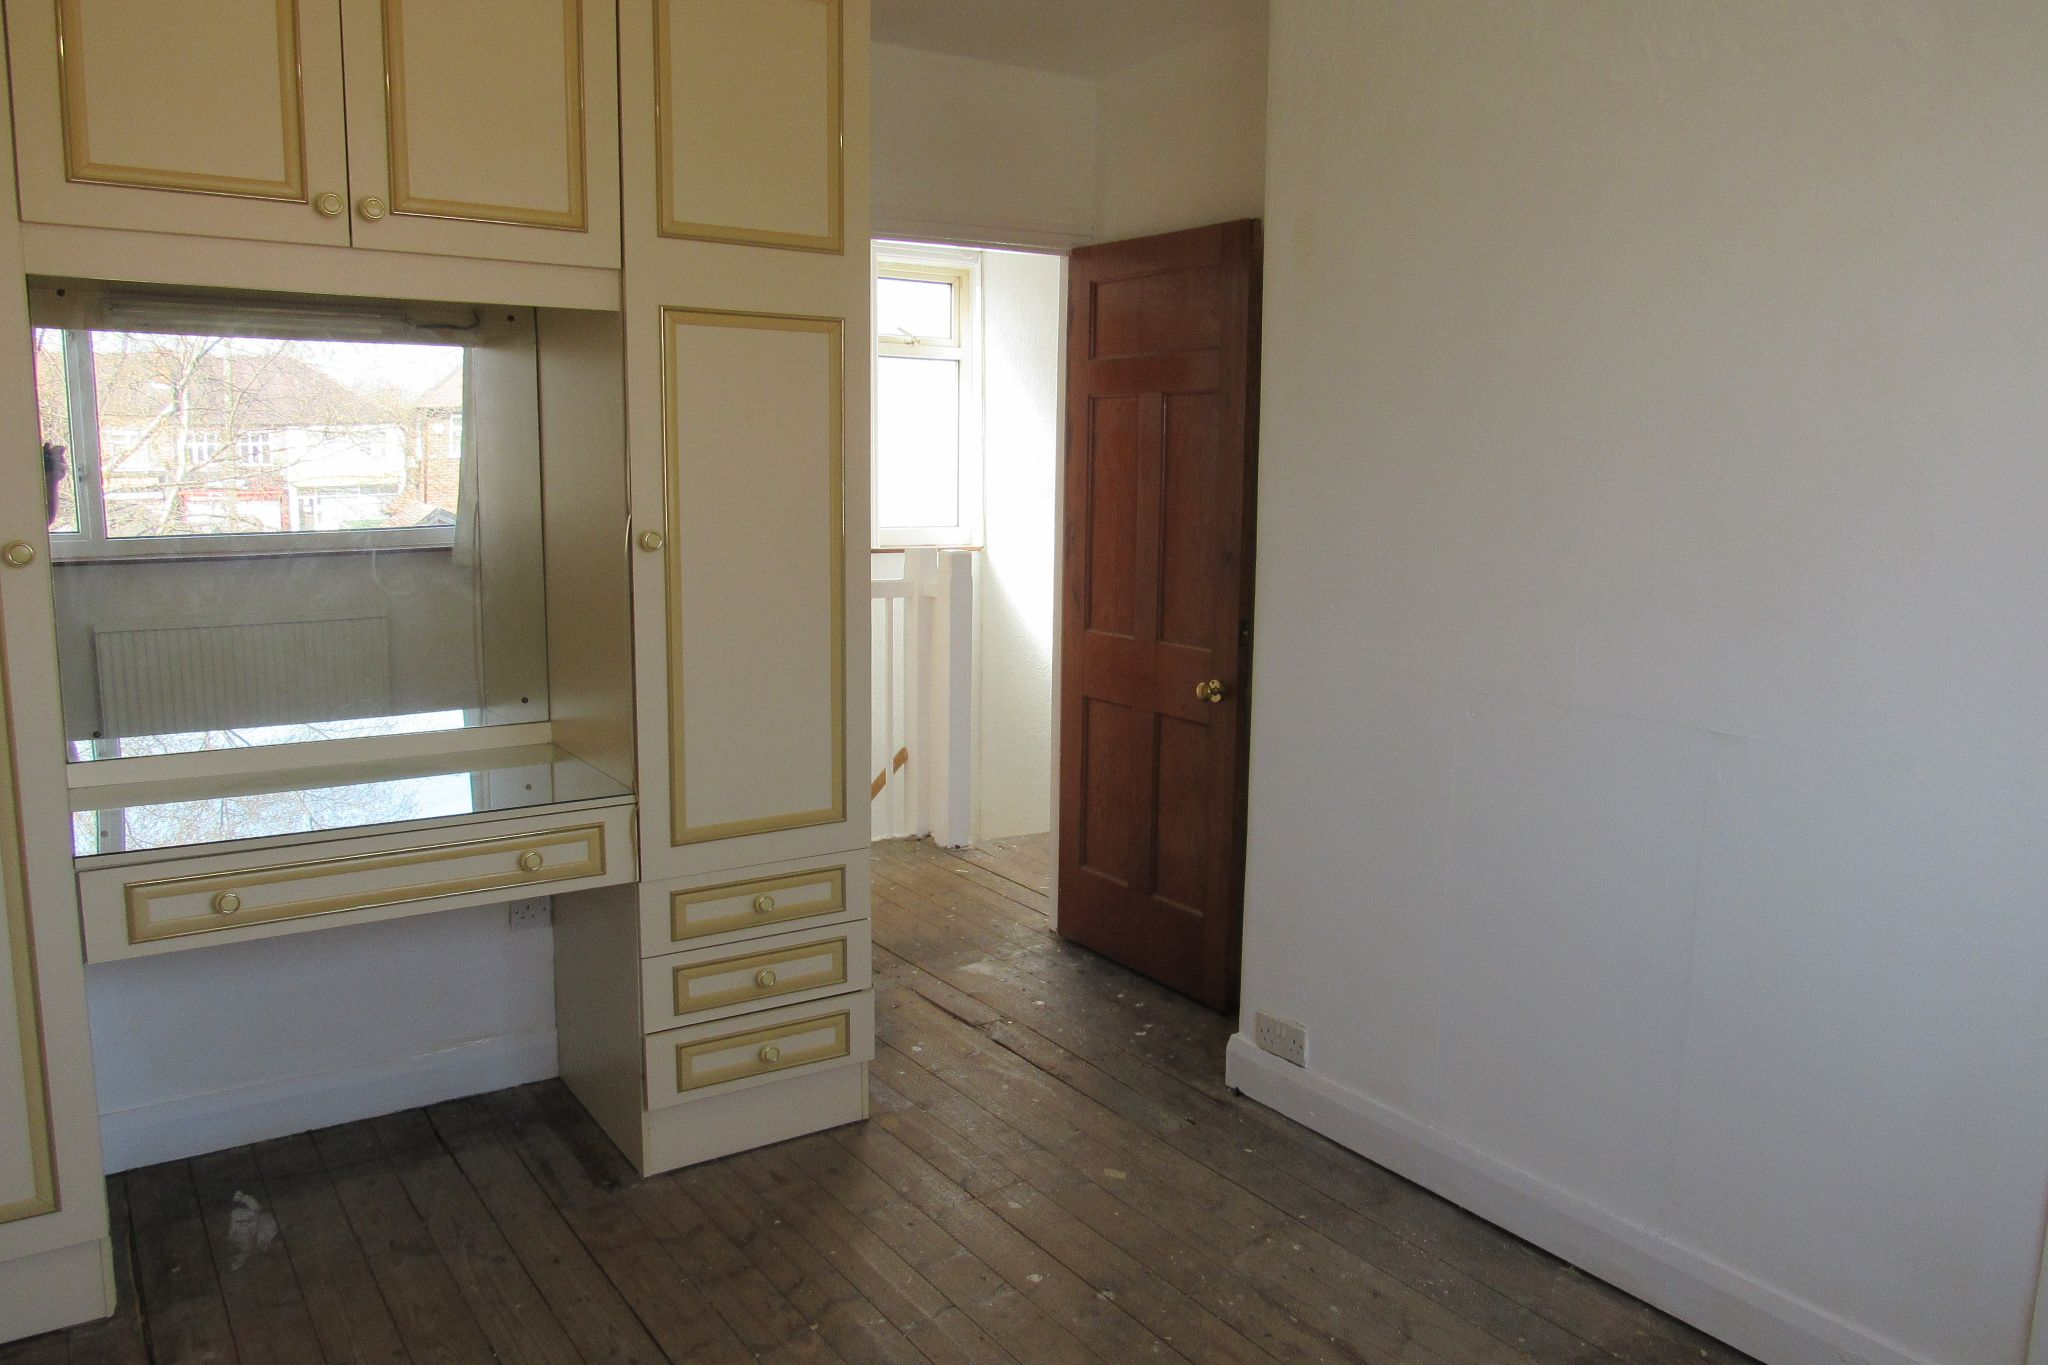 3 bedroom end terraced house SSTC in Manchester - Photograph 17.